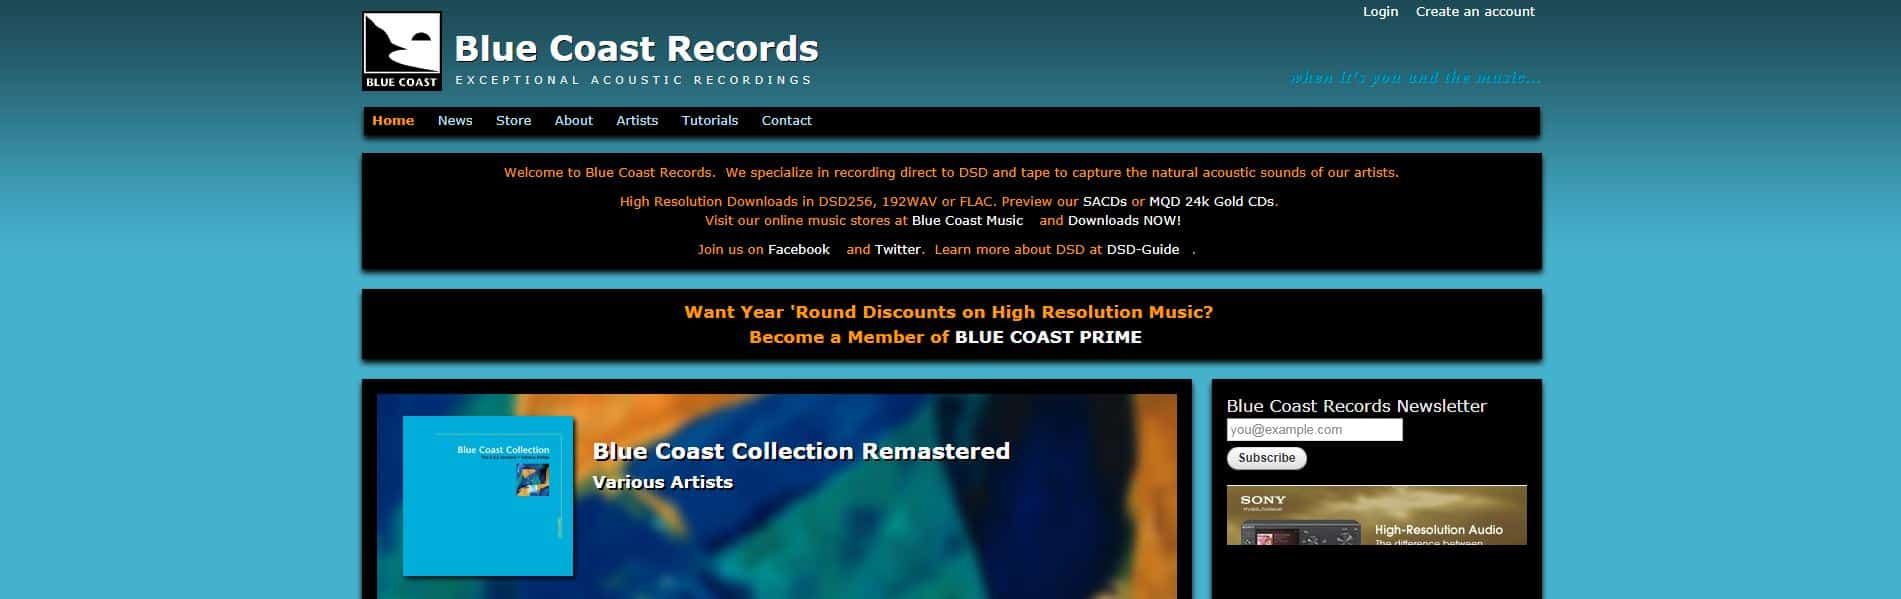 Blue Coast Records hi res music